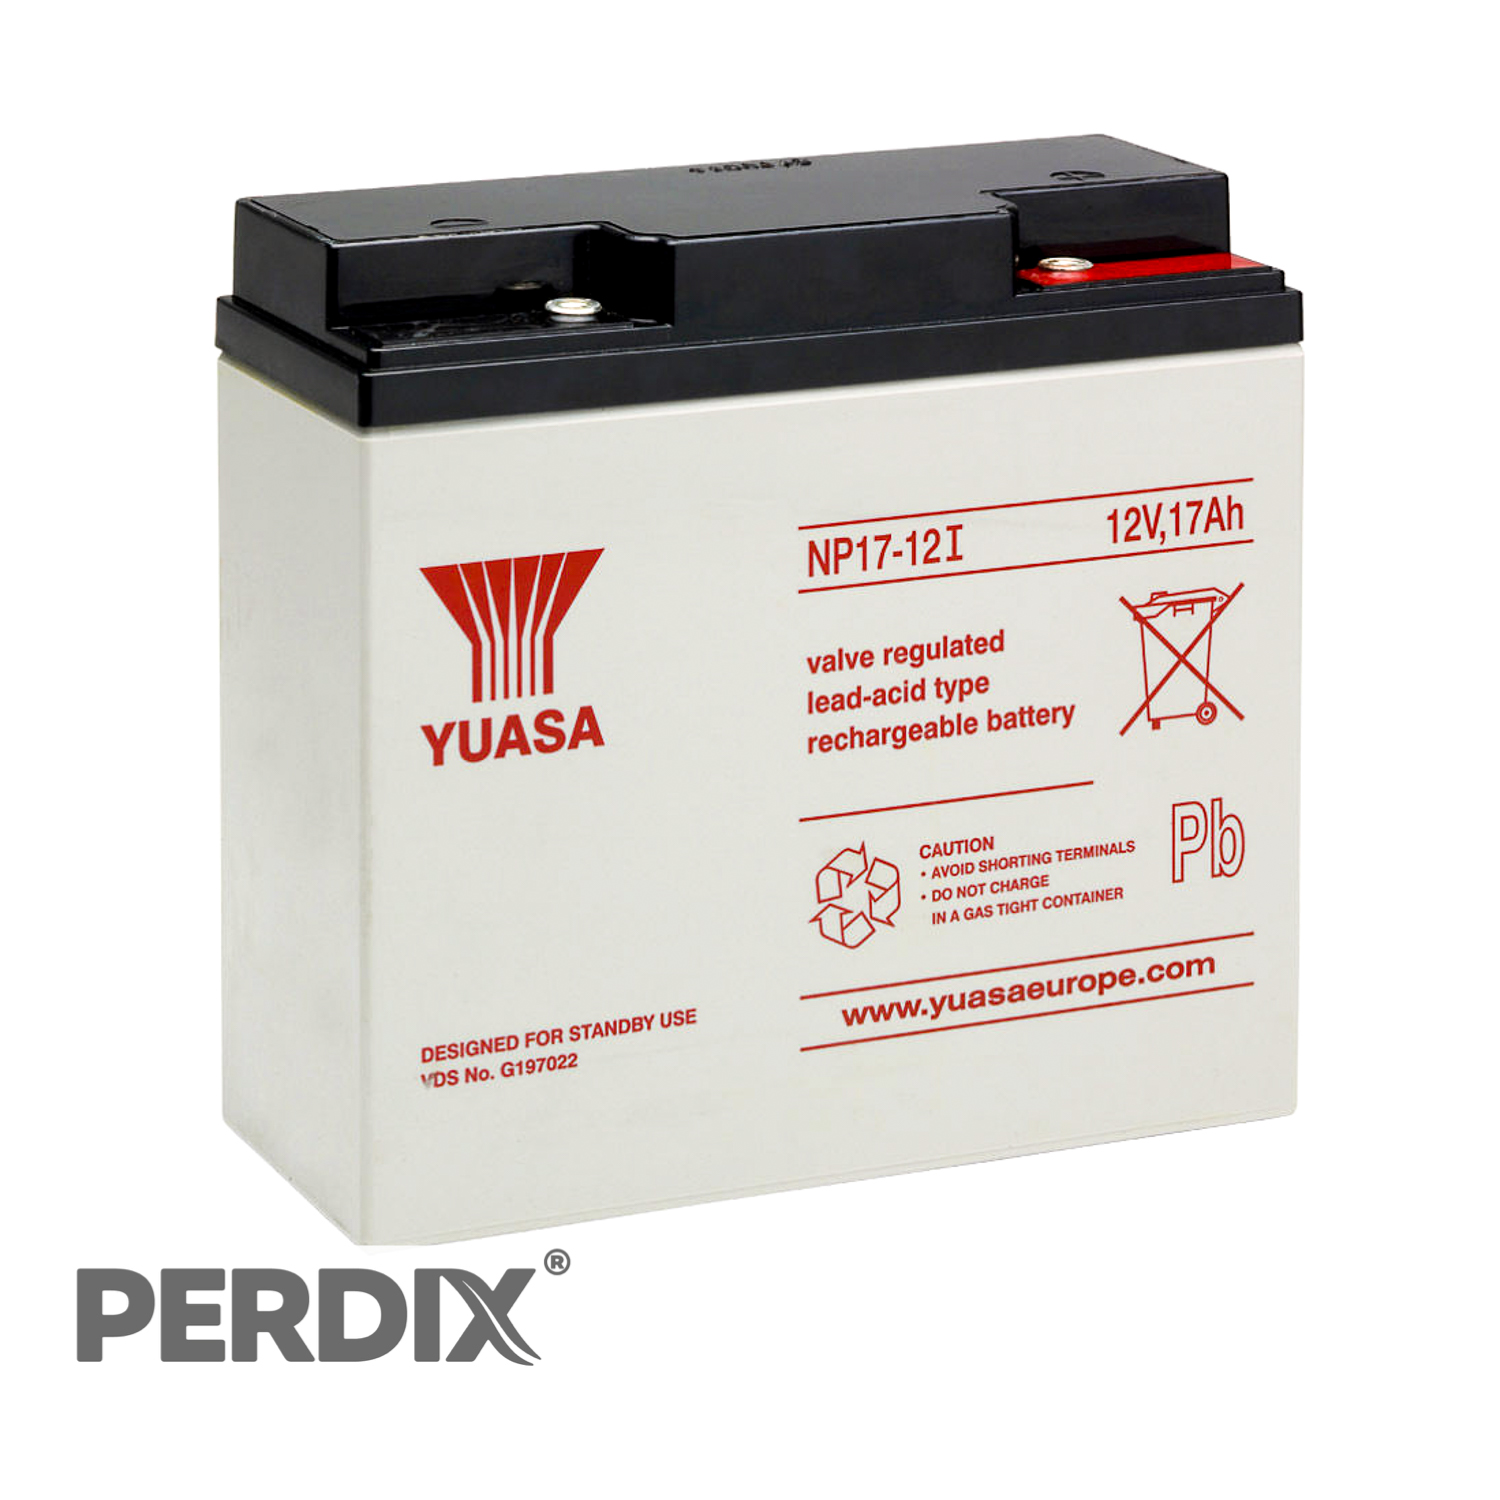 Yuasa Np17 12v Sealed Lead Acid Battery Perdix Wildlife Supplies Sealedleadacid Charger Circuits